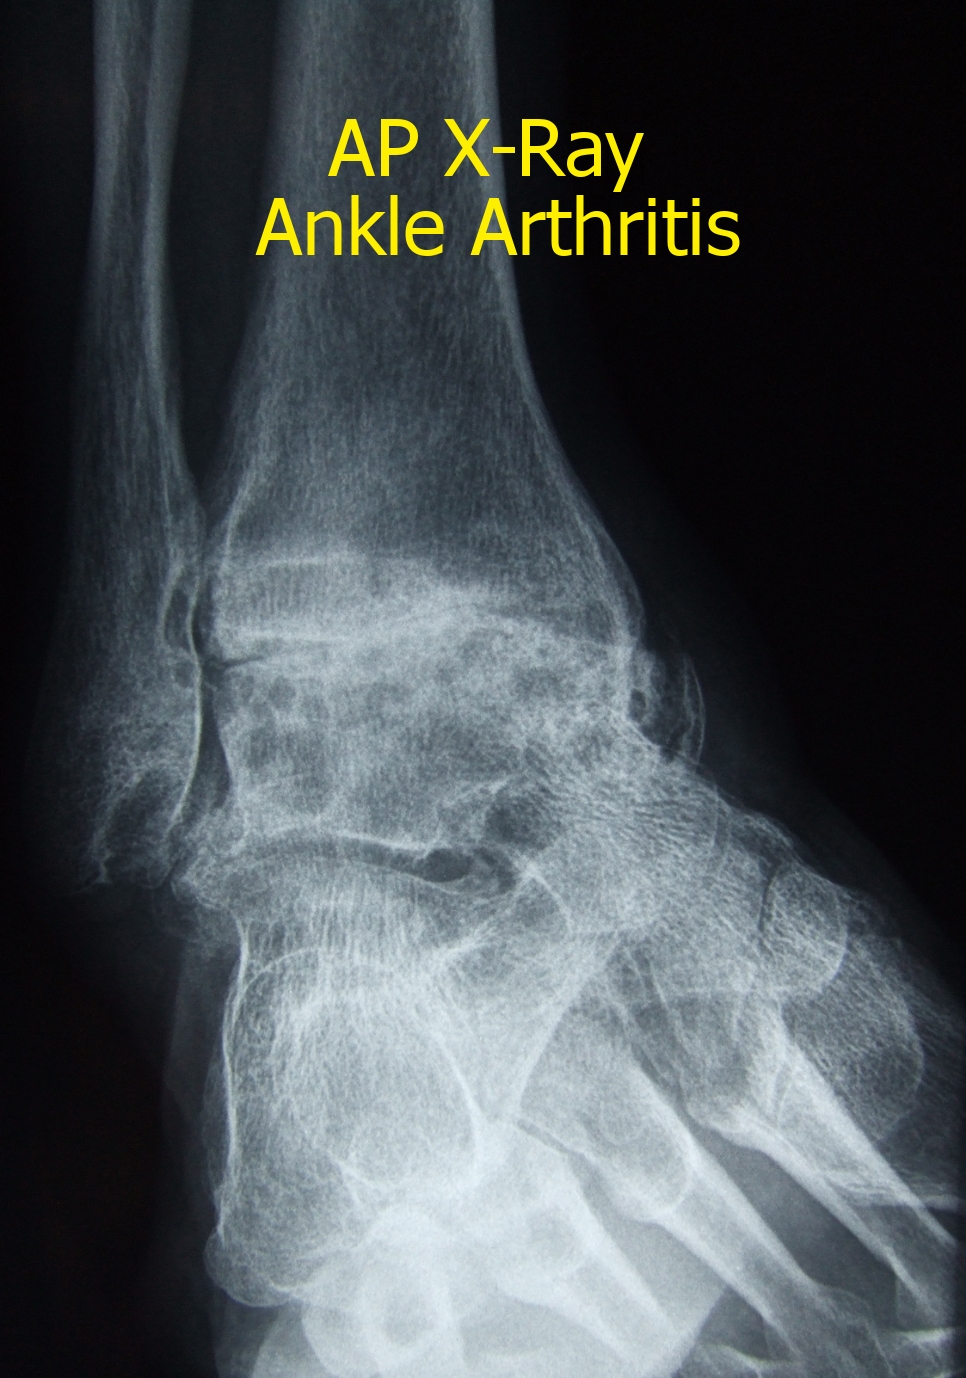 X-ray showing severe arthritis of the ankle joint (front)